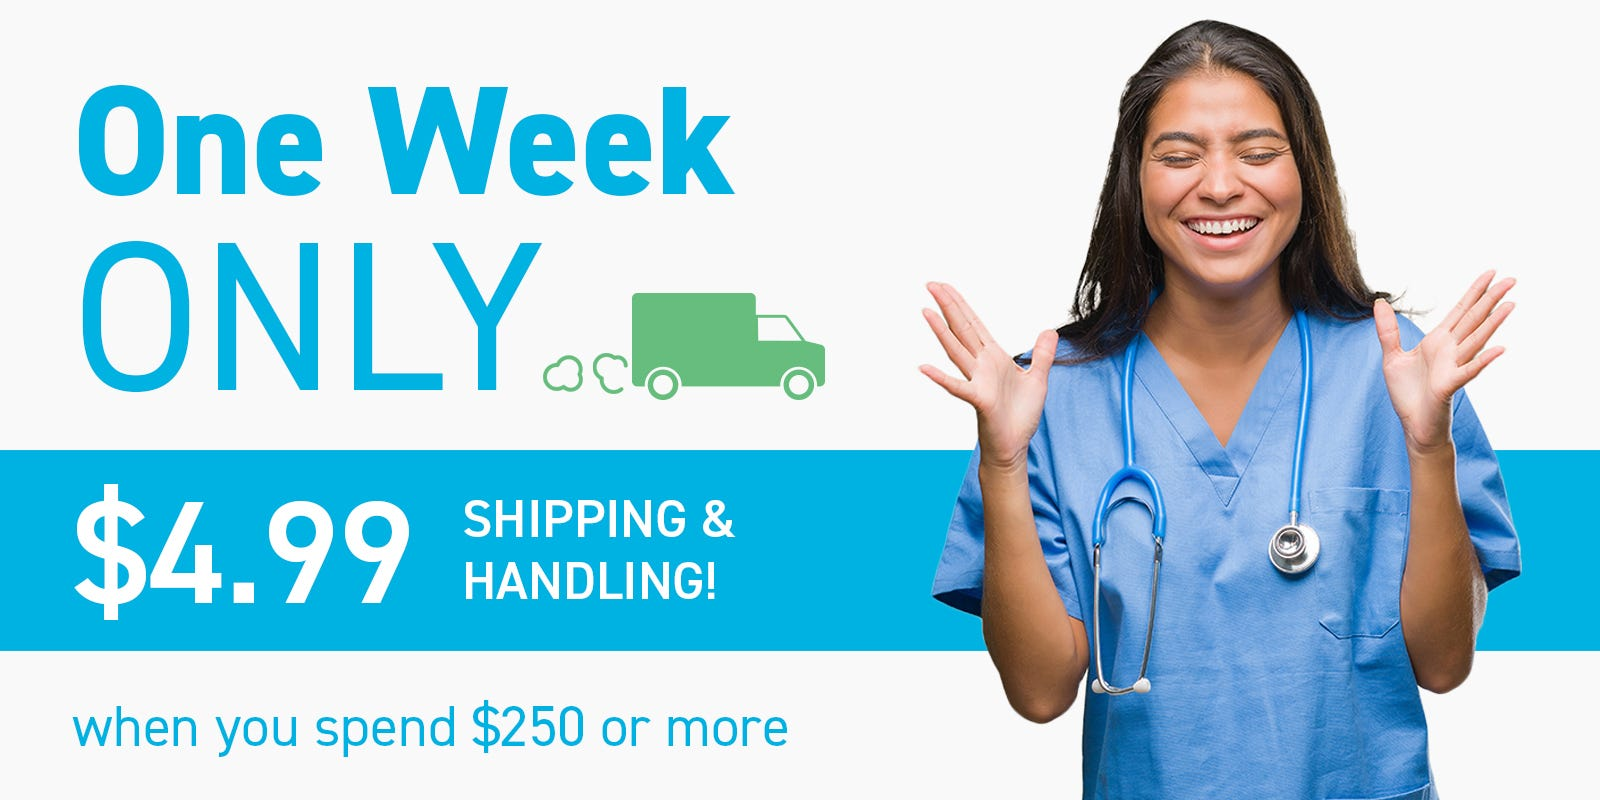 One Week Only: $4.99 Shipping & Handling